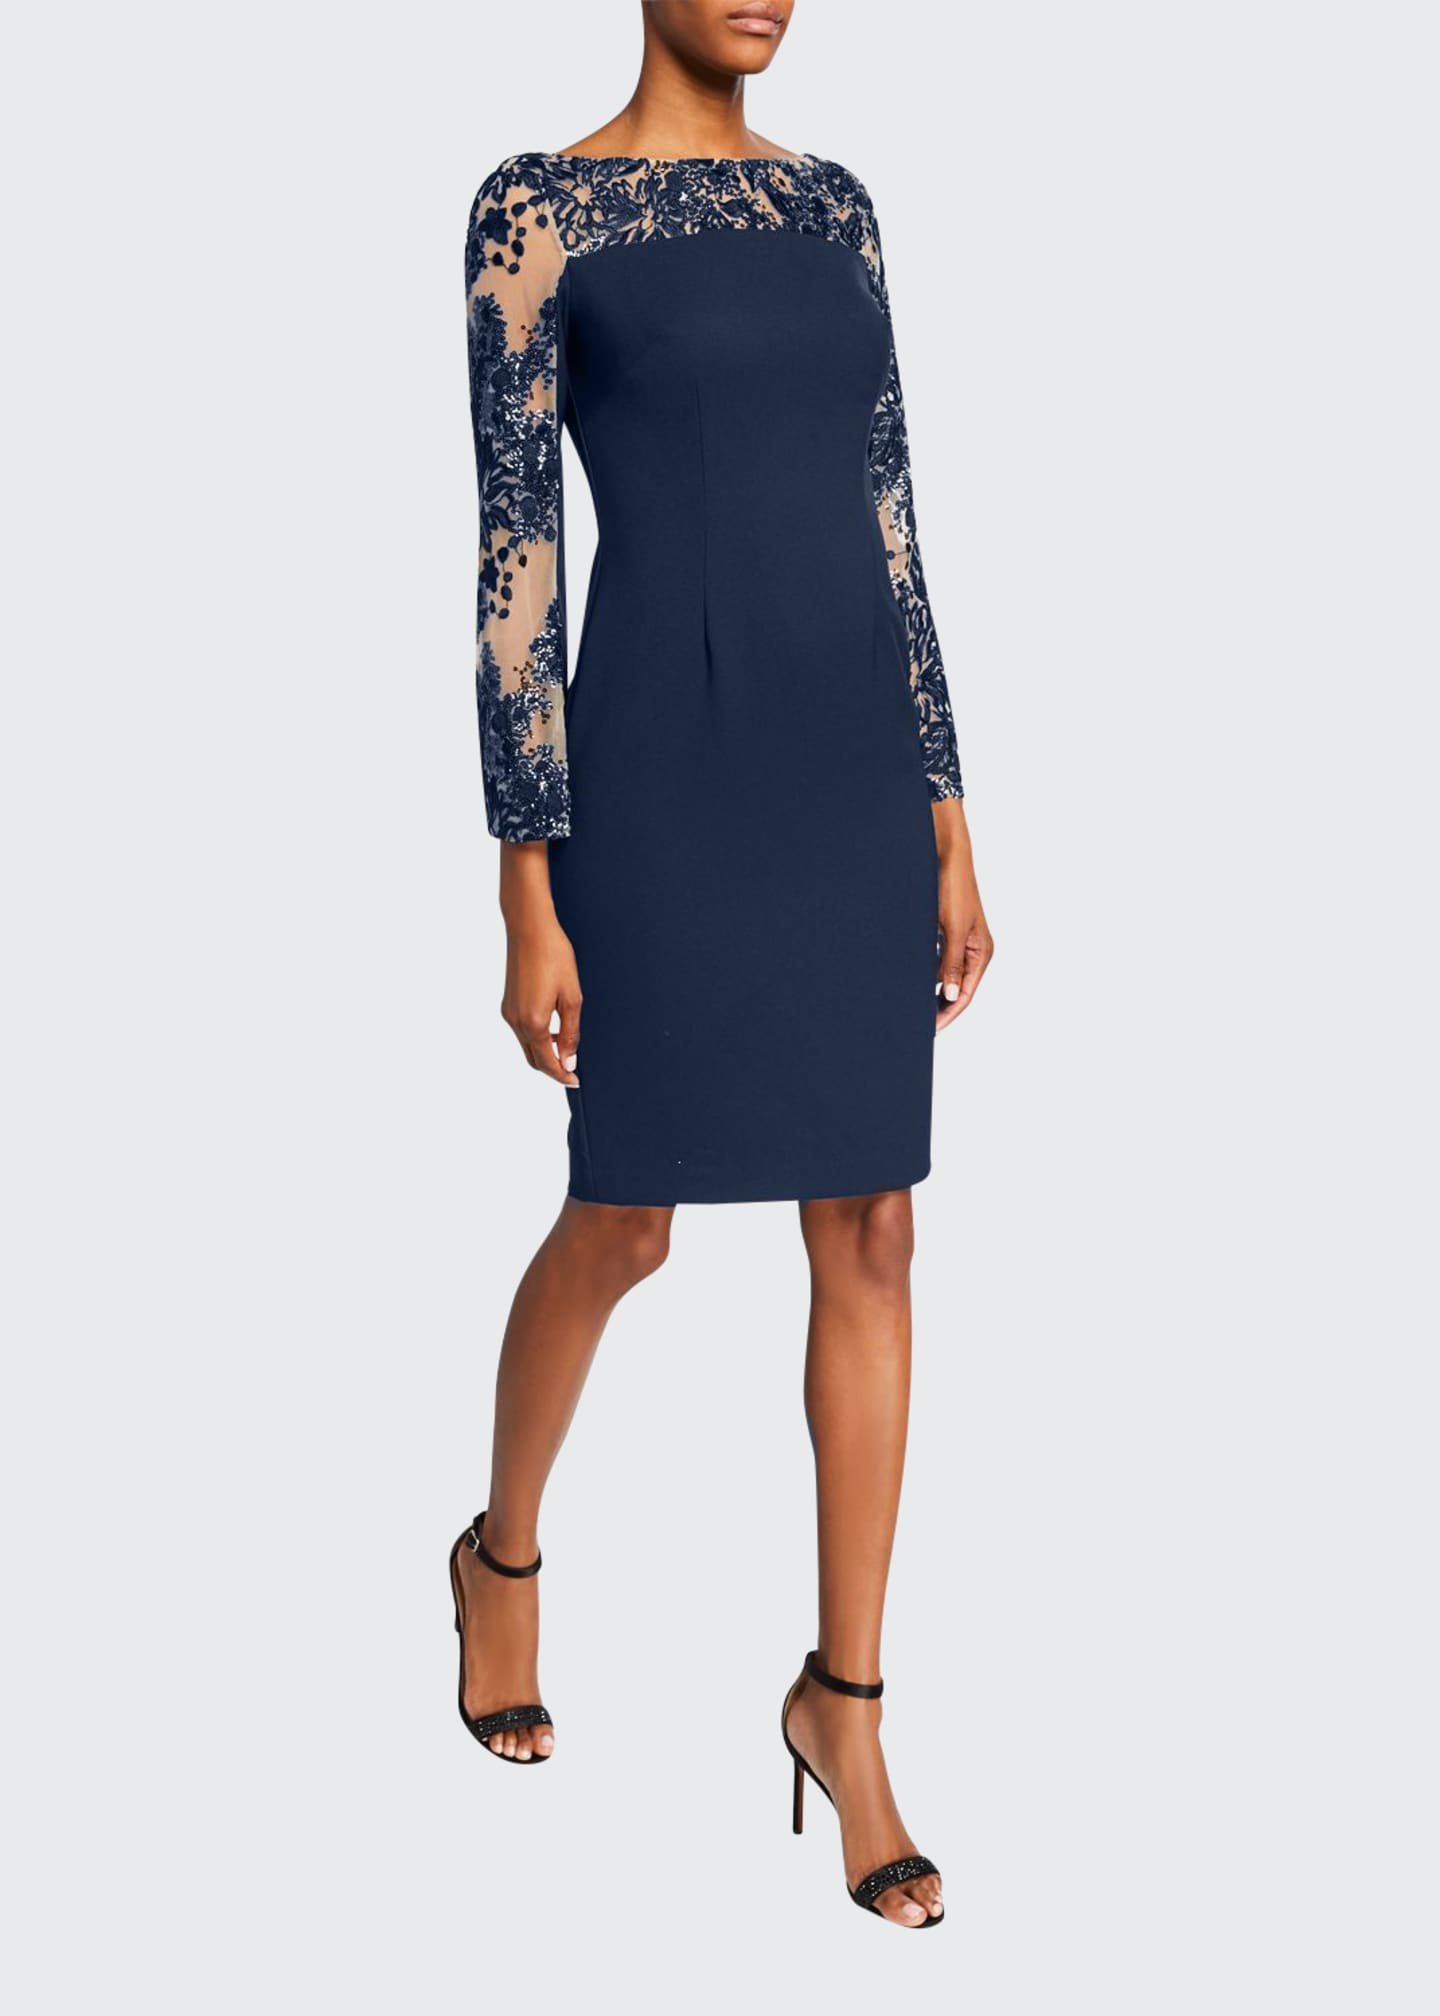 Carmen Marc Valvo Infusion Sequin Crepe Sheath Dress